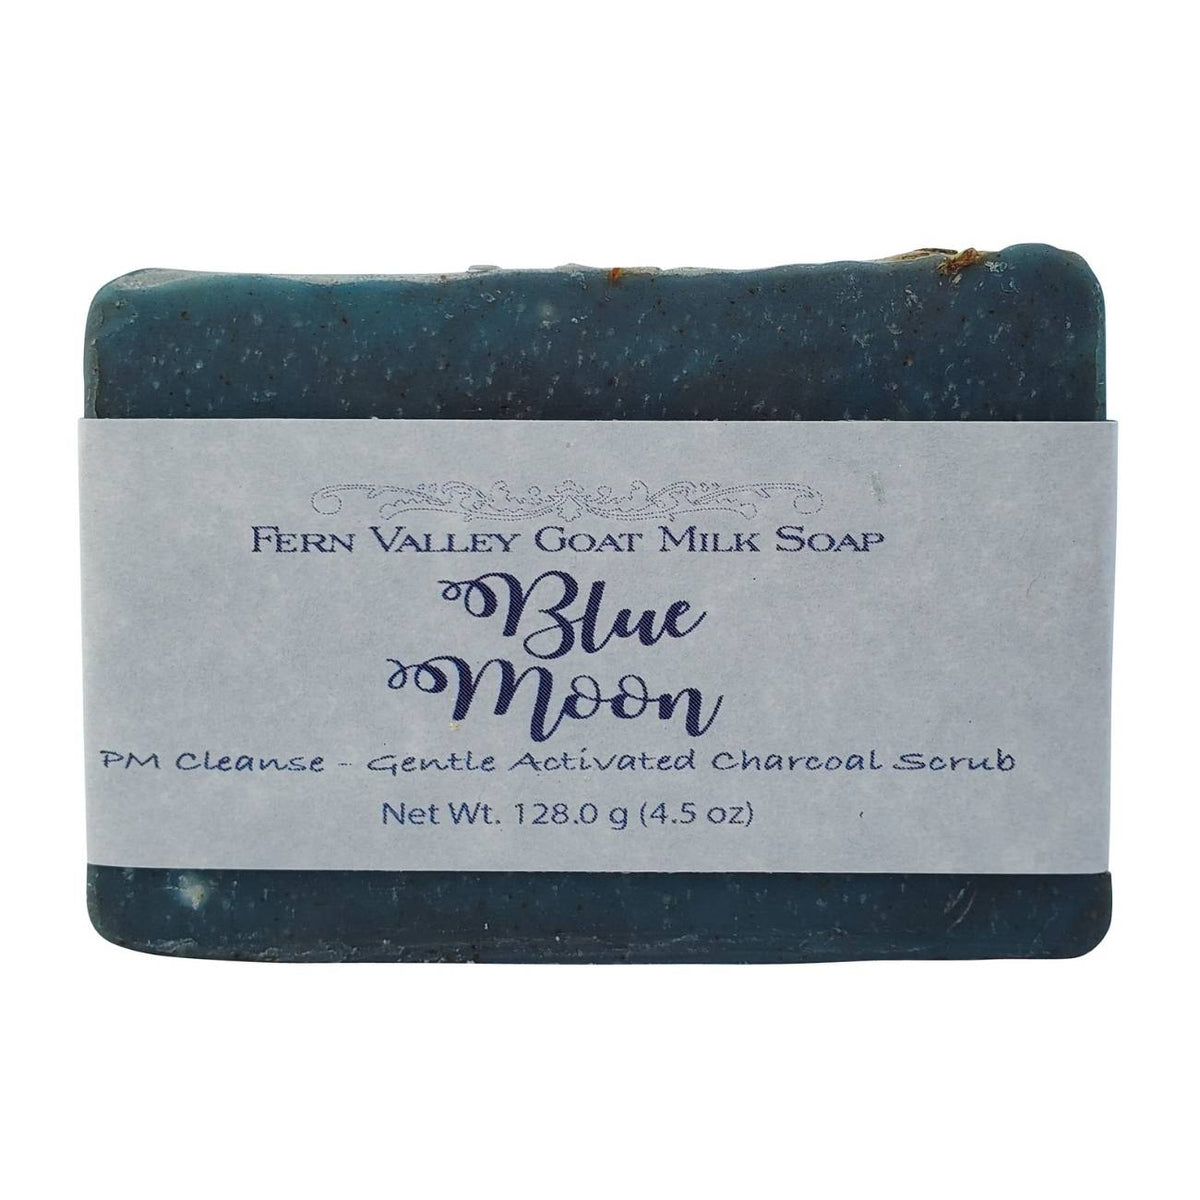 Blue Moon PM Cleanse - Gentle Activated Charcoal Scrub